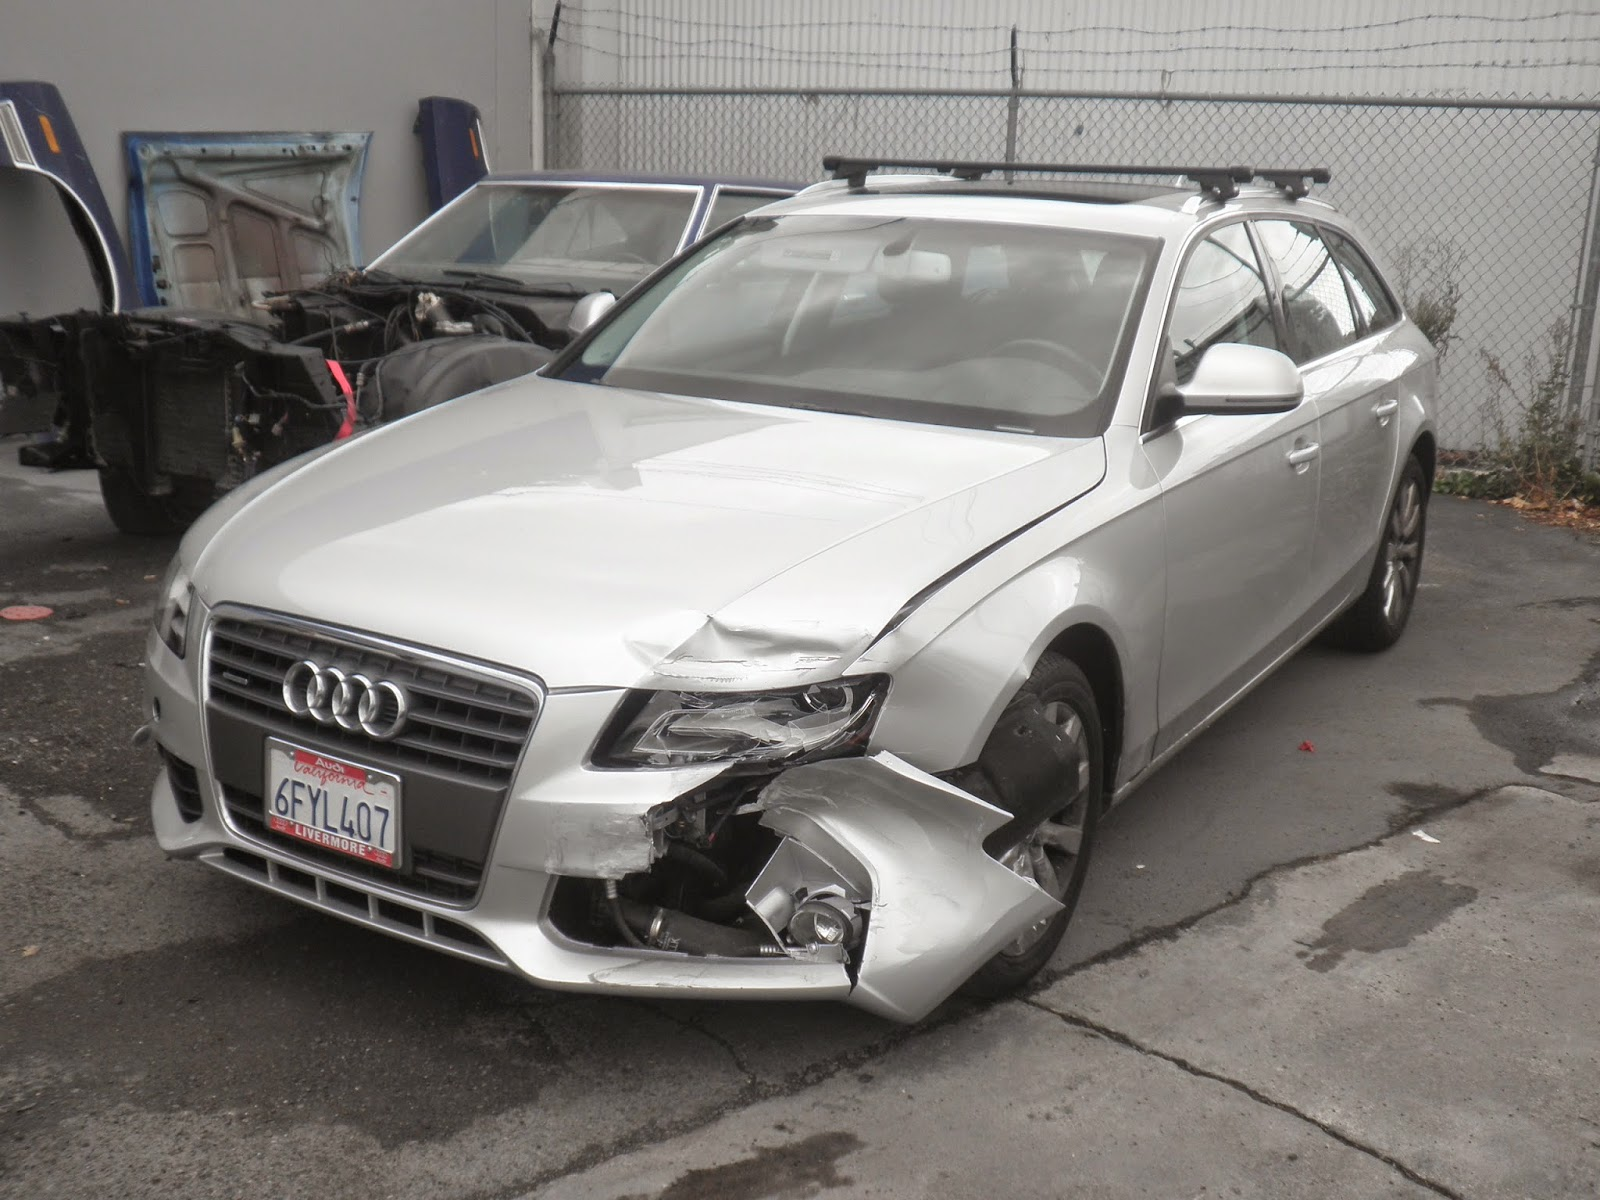 Auto before auto body crash repairs at Almost Everything Auto Body